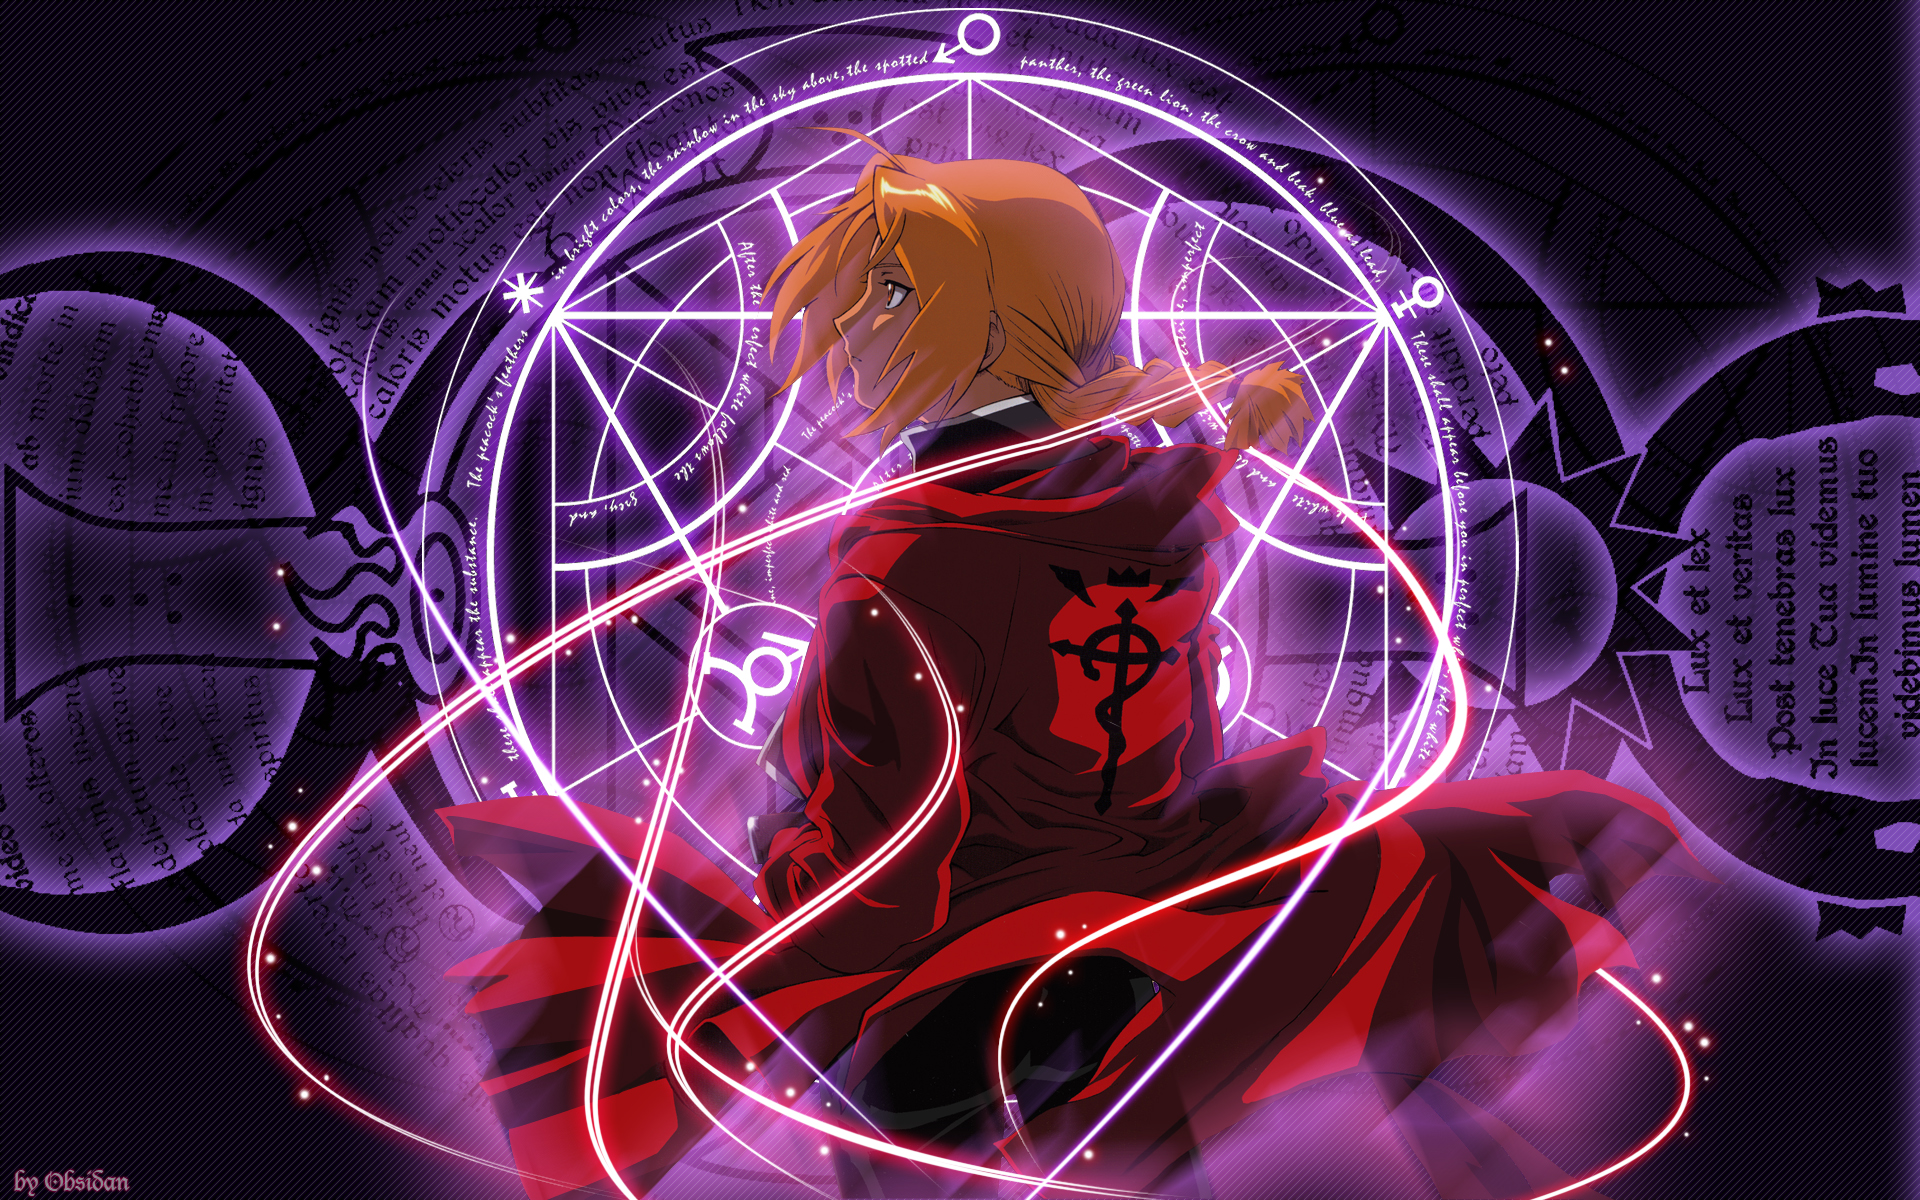 Full Metal Alchemist 05 : Free High Ranked HD Anime Desktop Background | Imagez Only